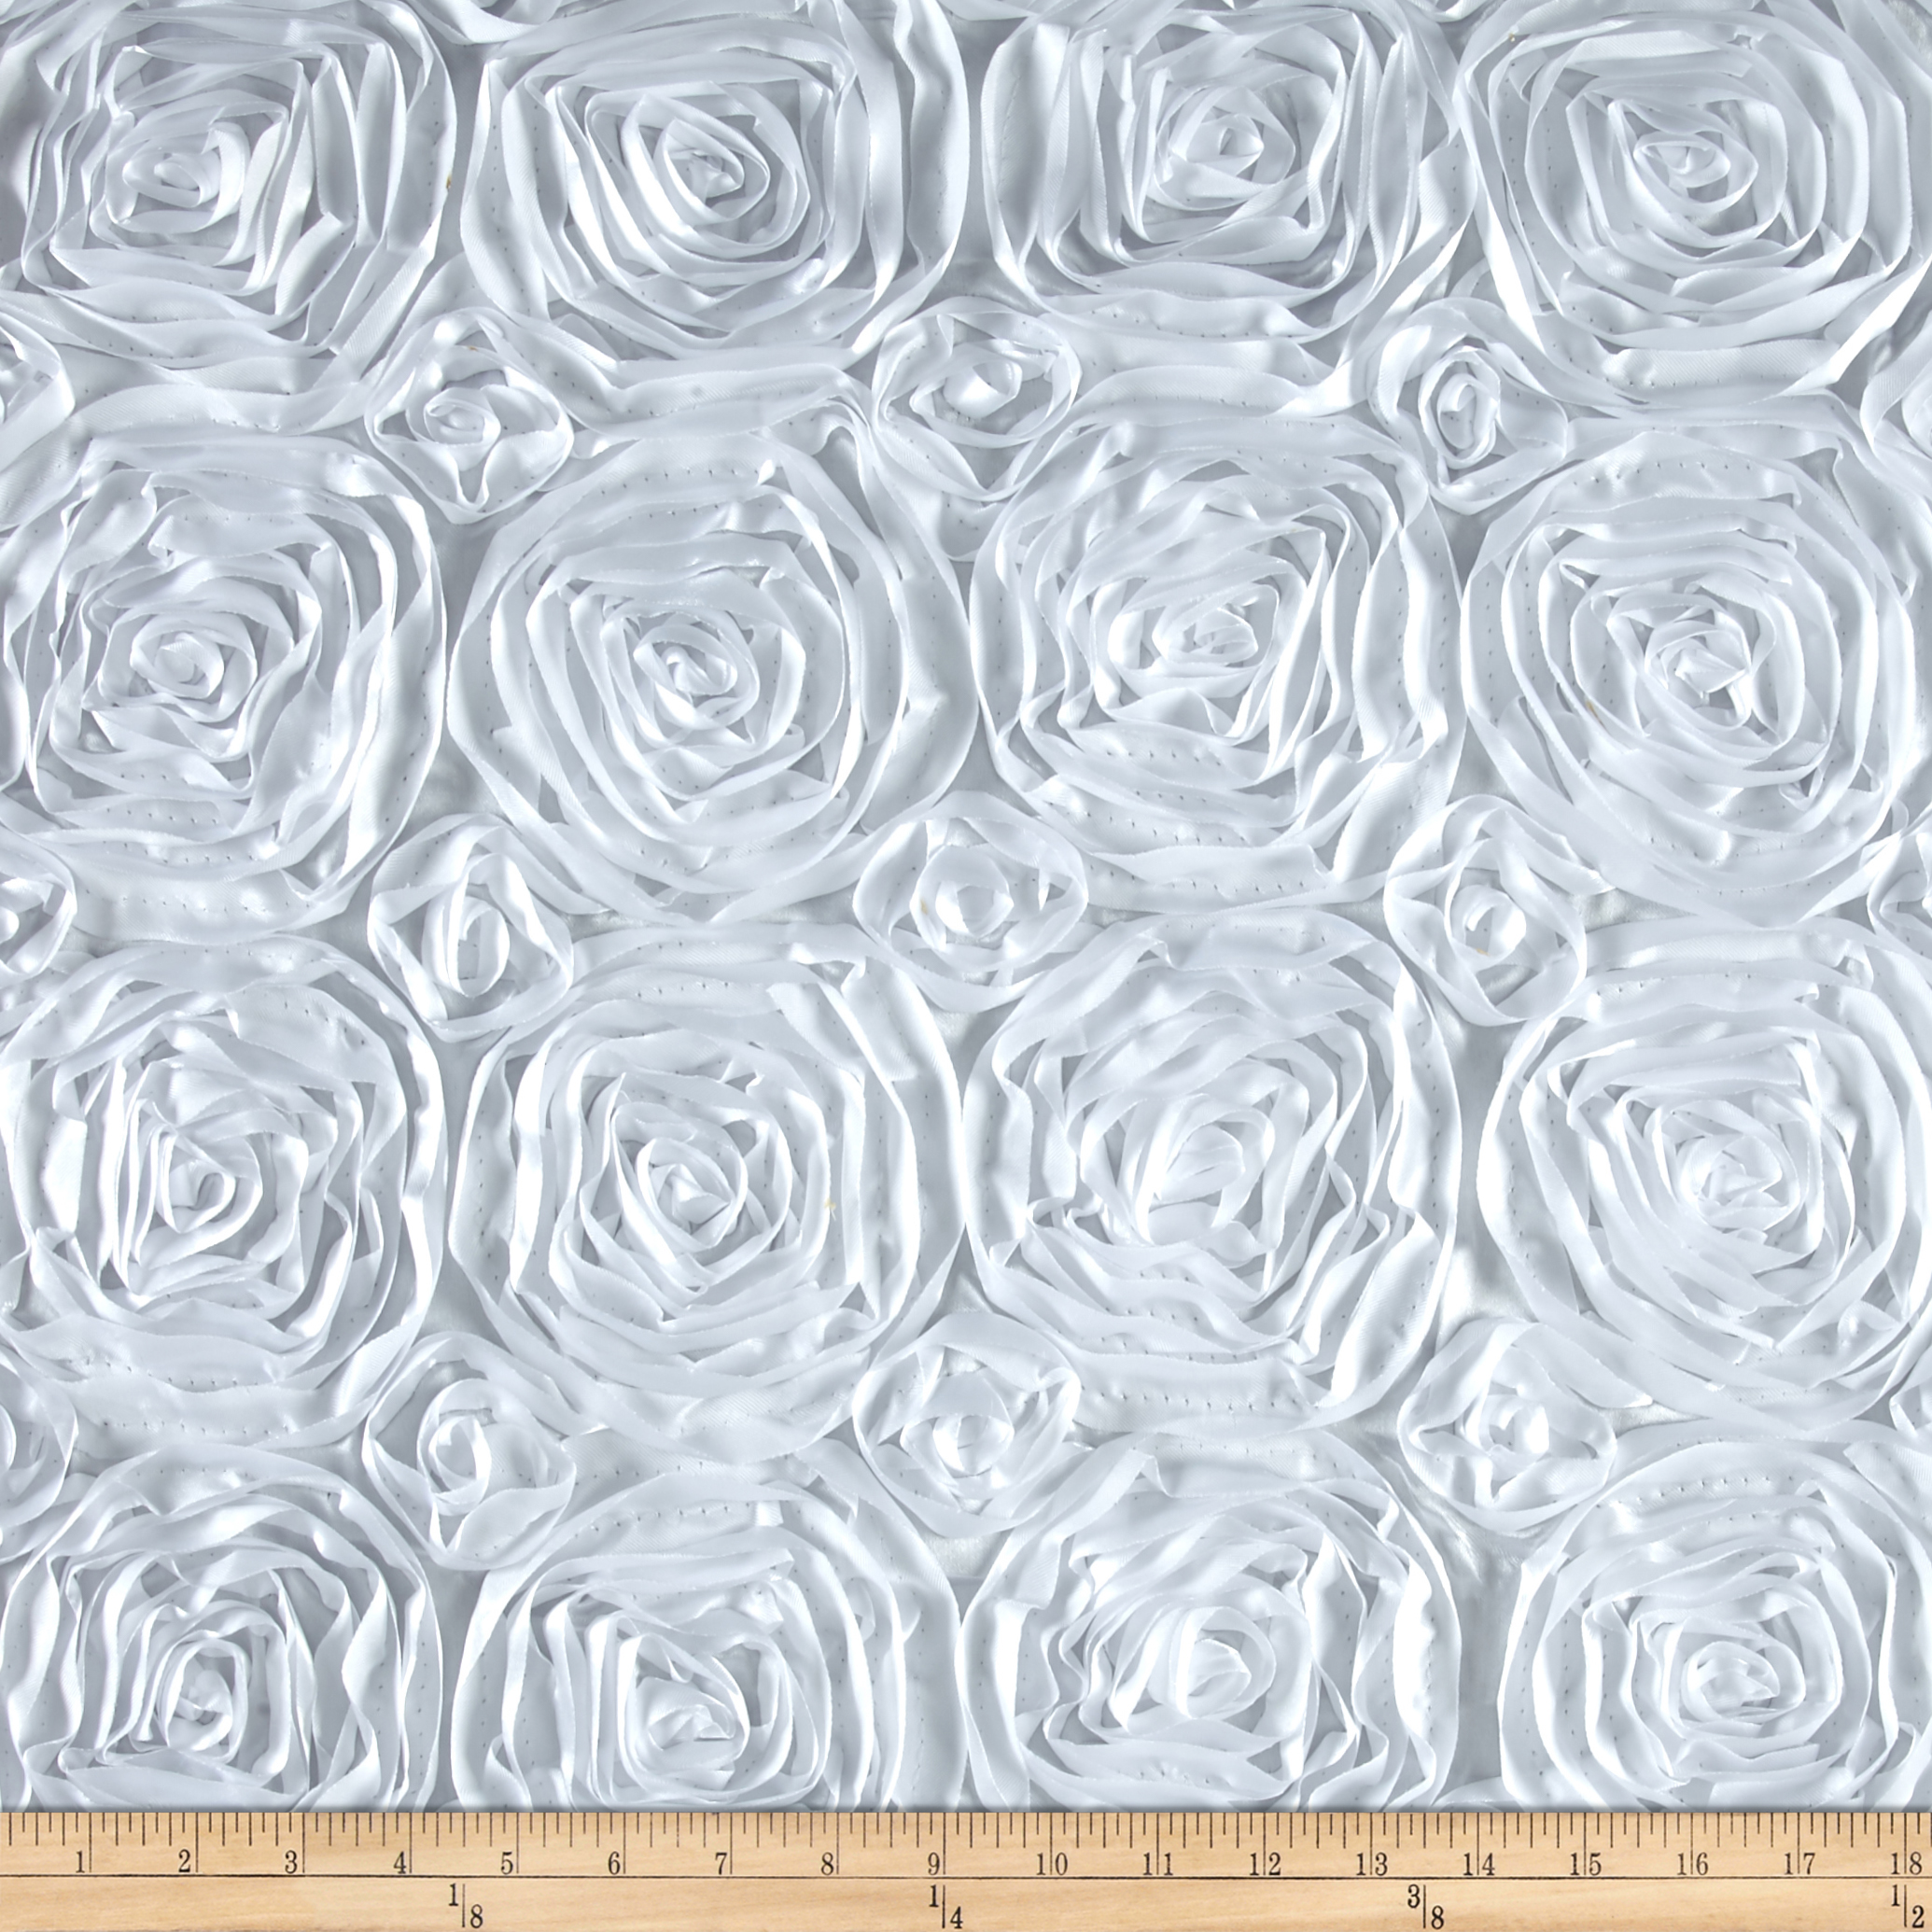 Wedding Rosette Satin White Fabric by Ben in USA